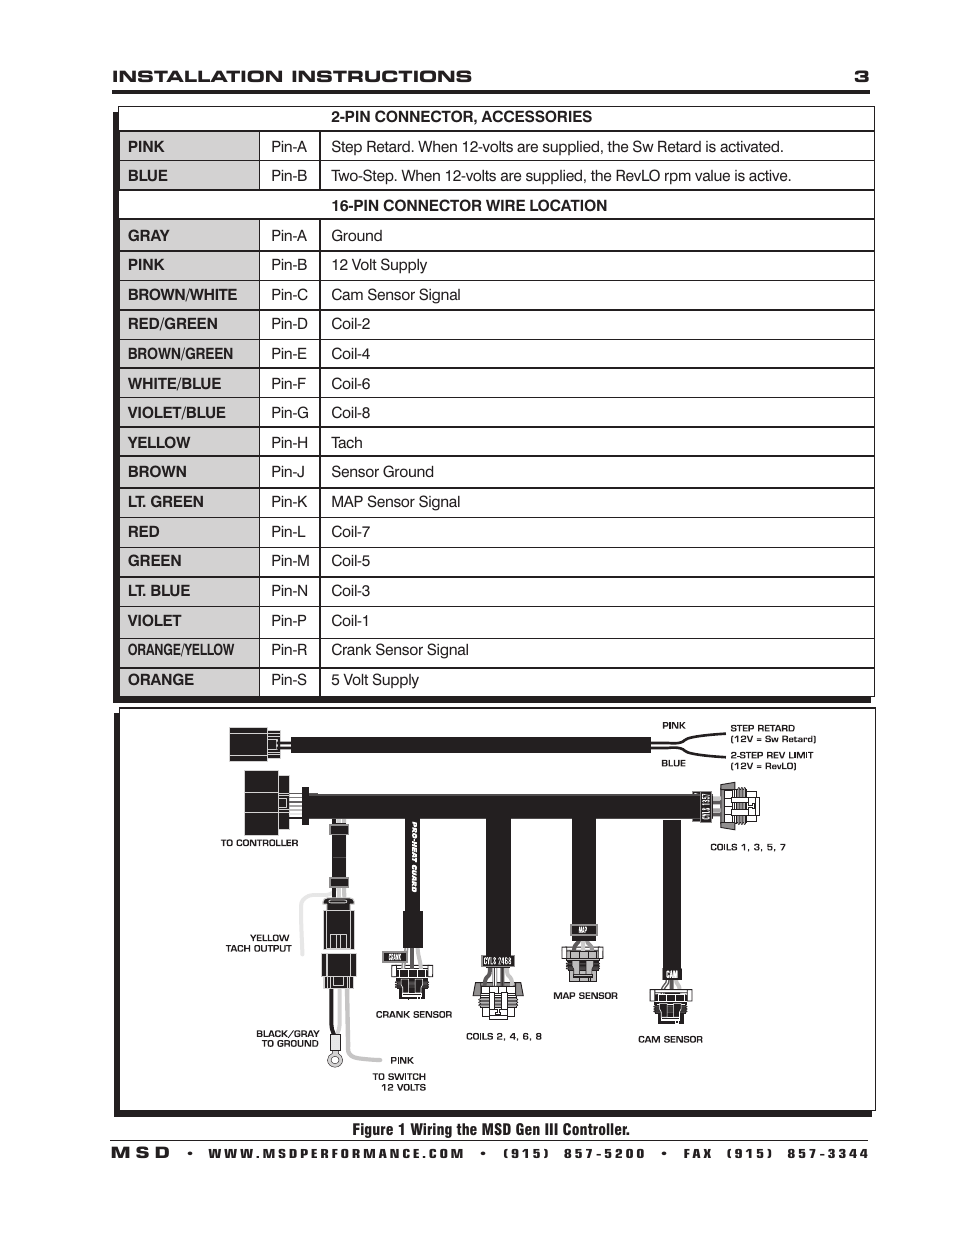 msd two step wiring diagram light socket 6010 6ls ignition controller for ls1_ls6 (24 tooth crank trigger) engines installation user ...